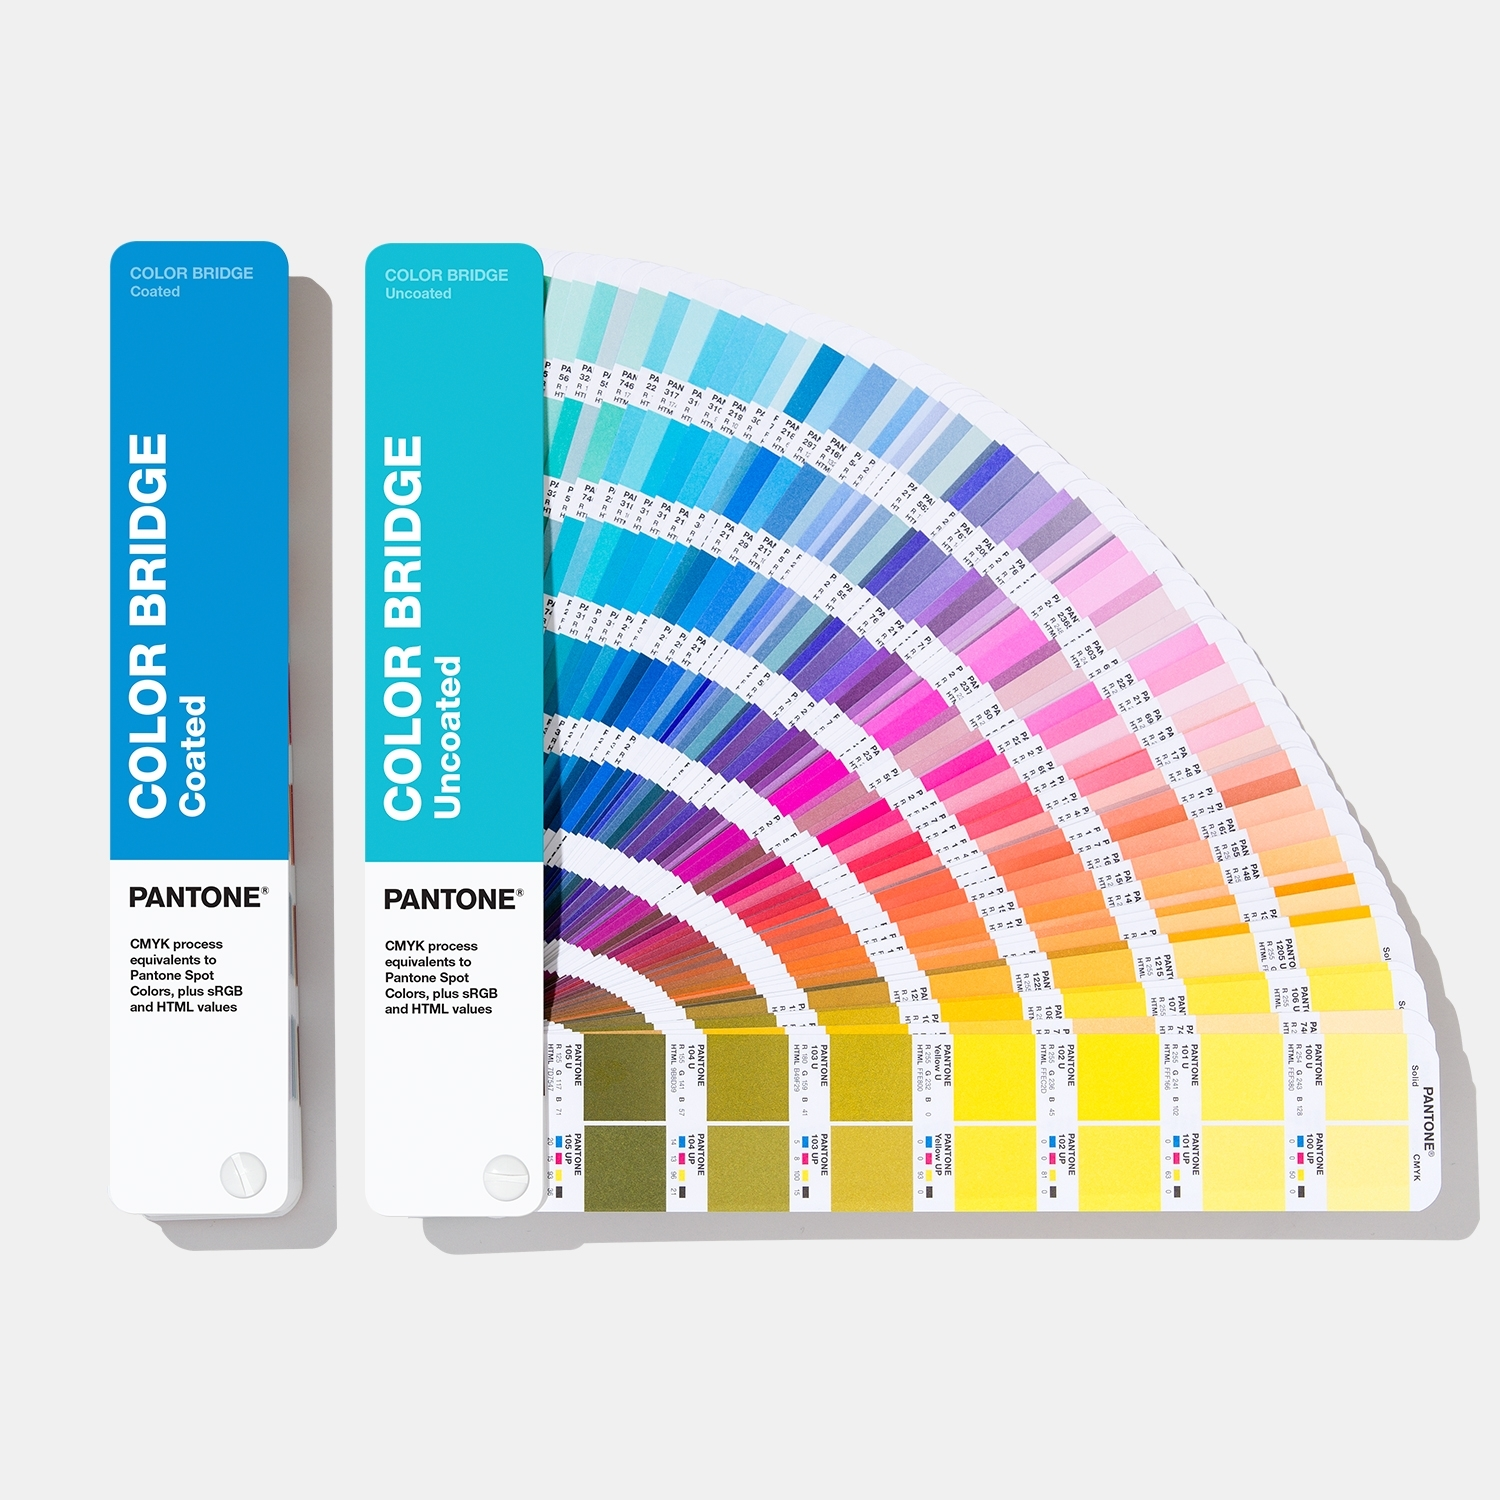 Pantone Color Bridge Guide | Uncoated Translate Pantone Colors into CMYK, HTML, RGB - View 1